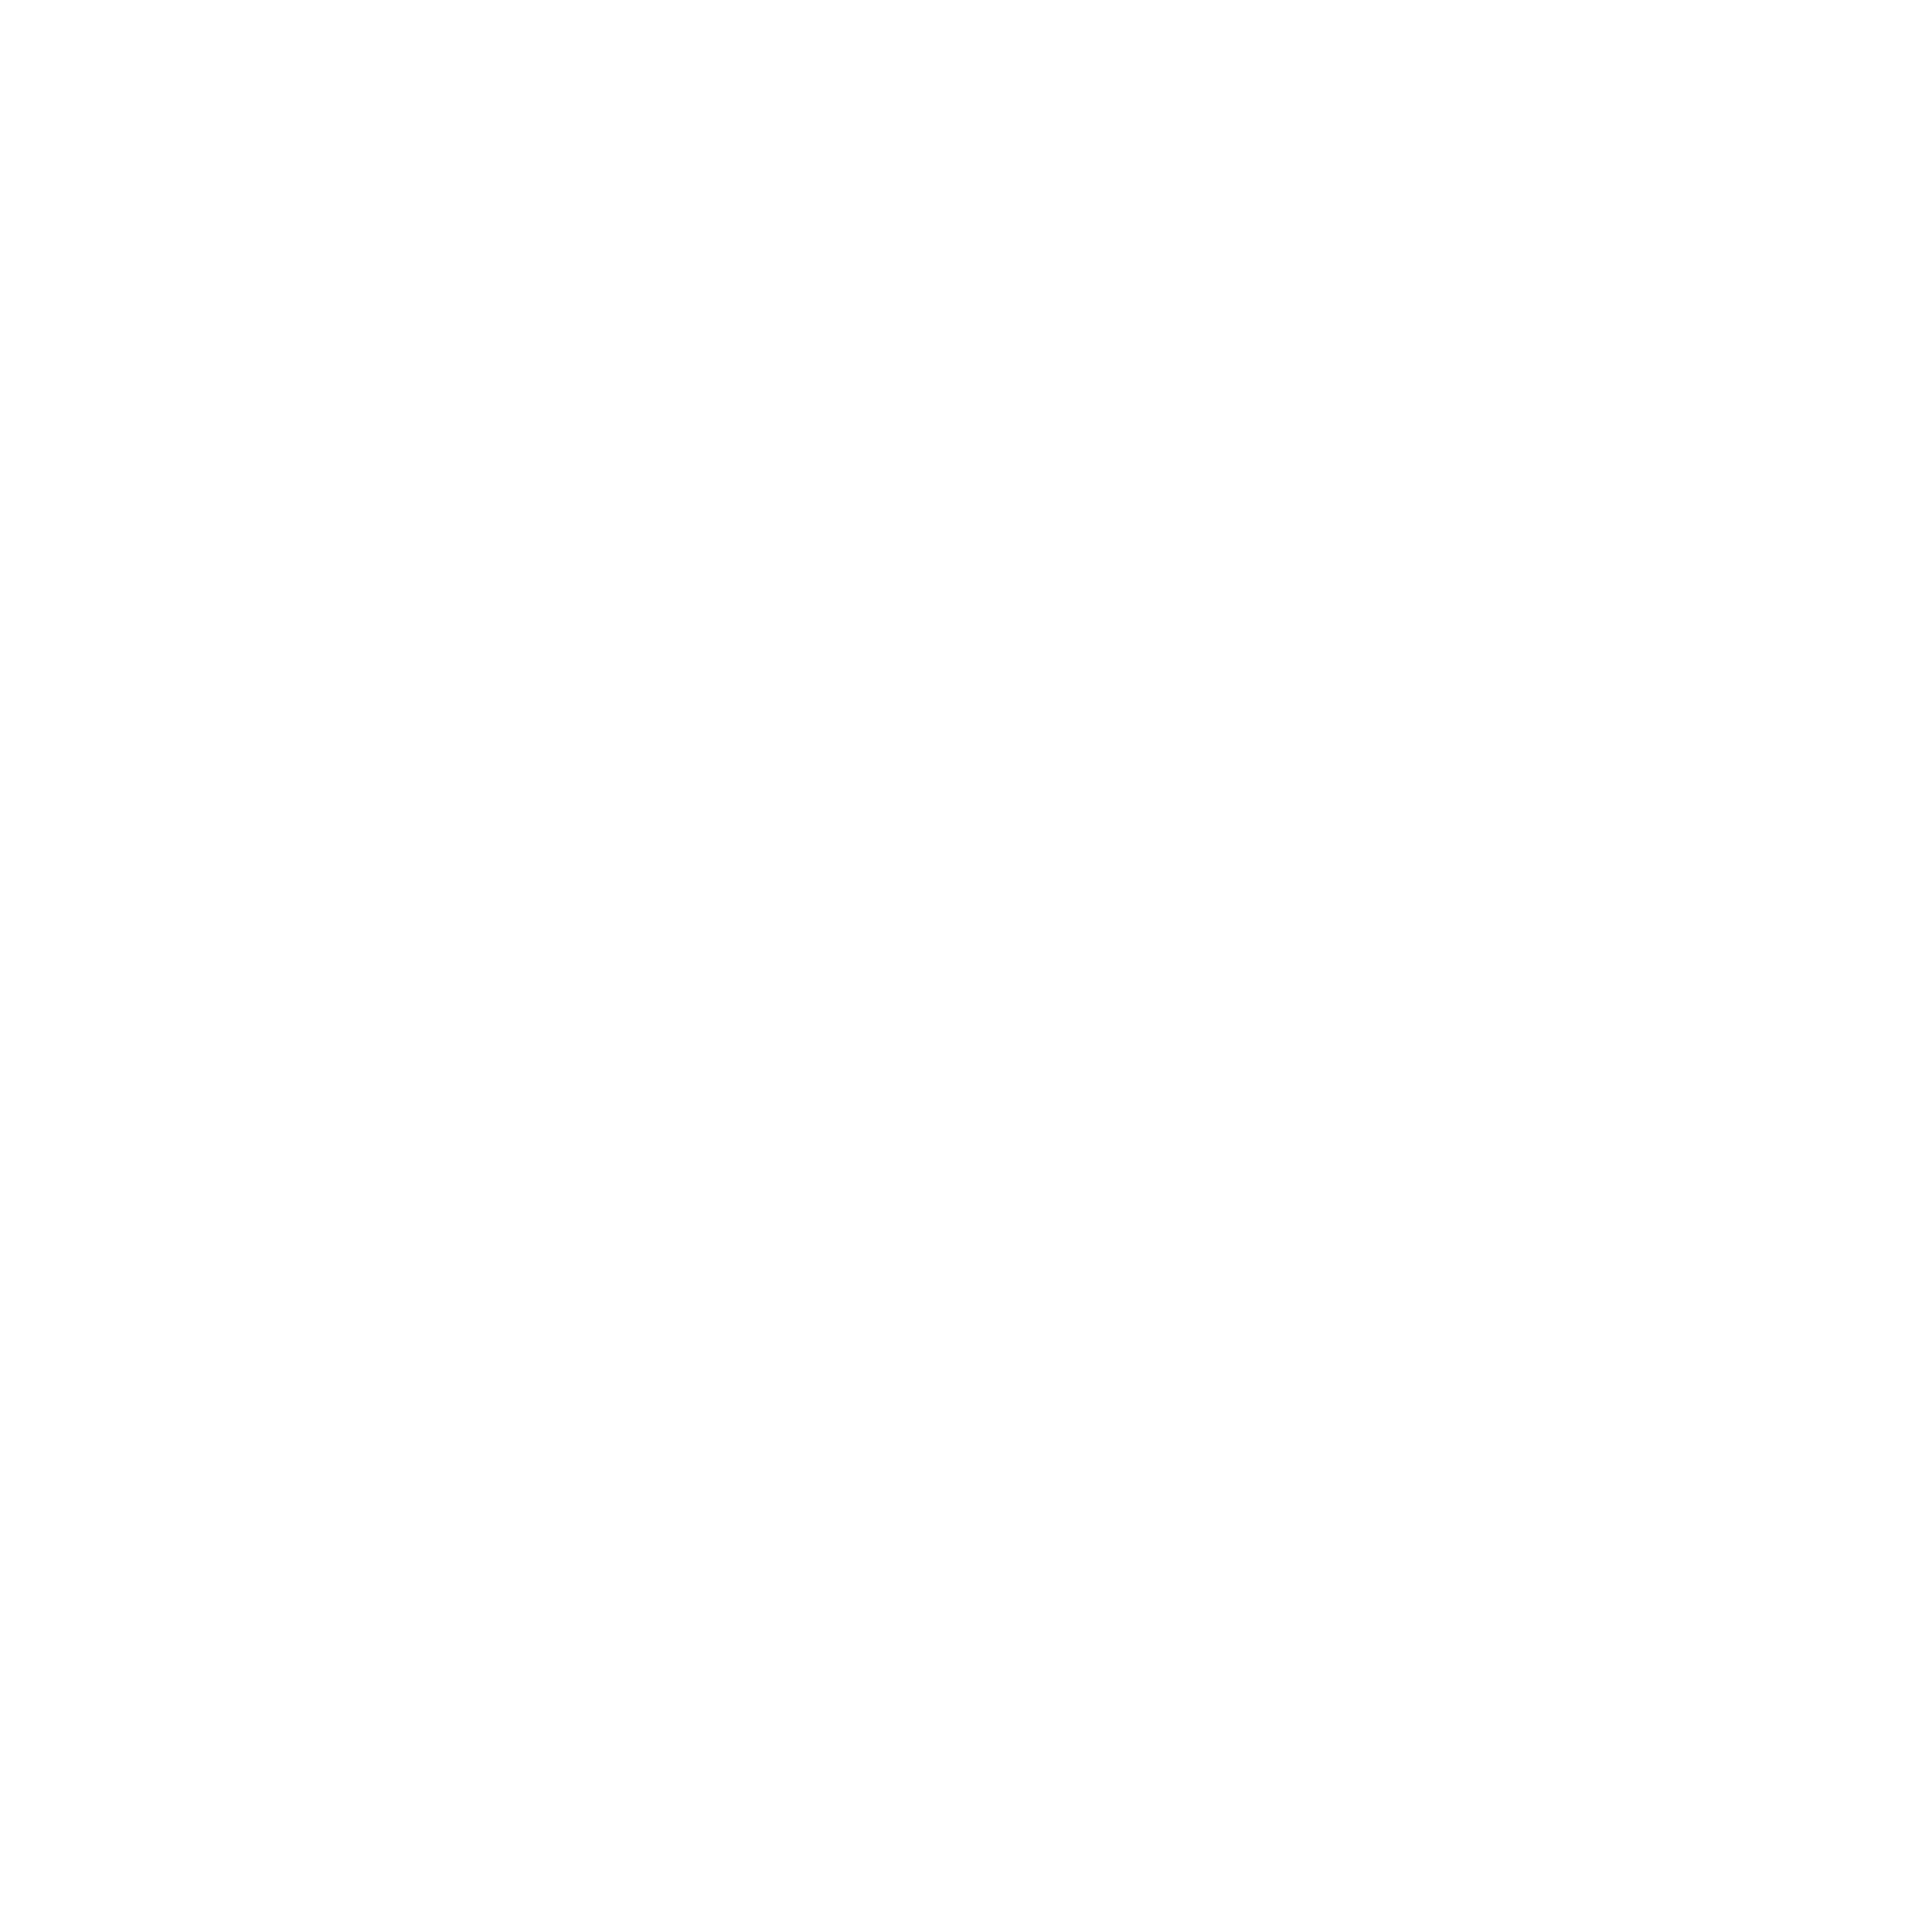 A costumed man greets a young boy at the Krewe of Boo parade on Saturday, Oct. 23, 2021, in New Orleans.